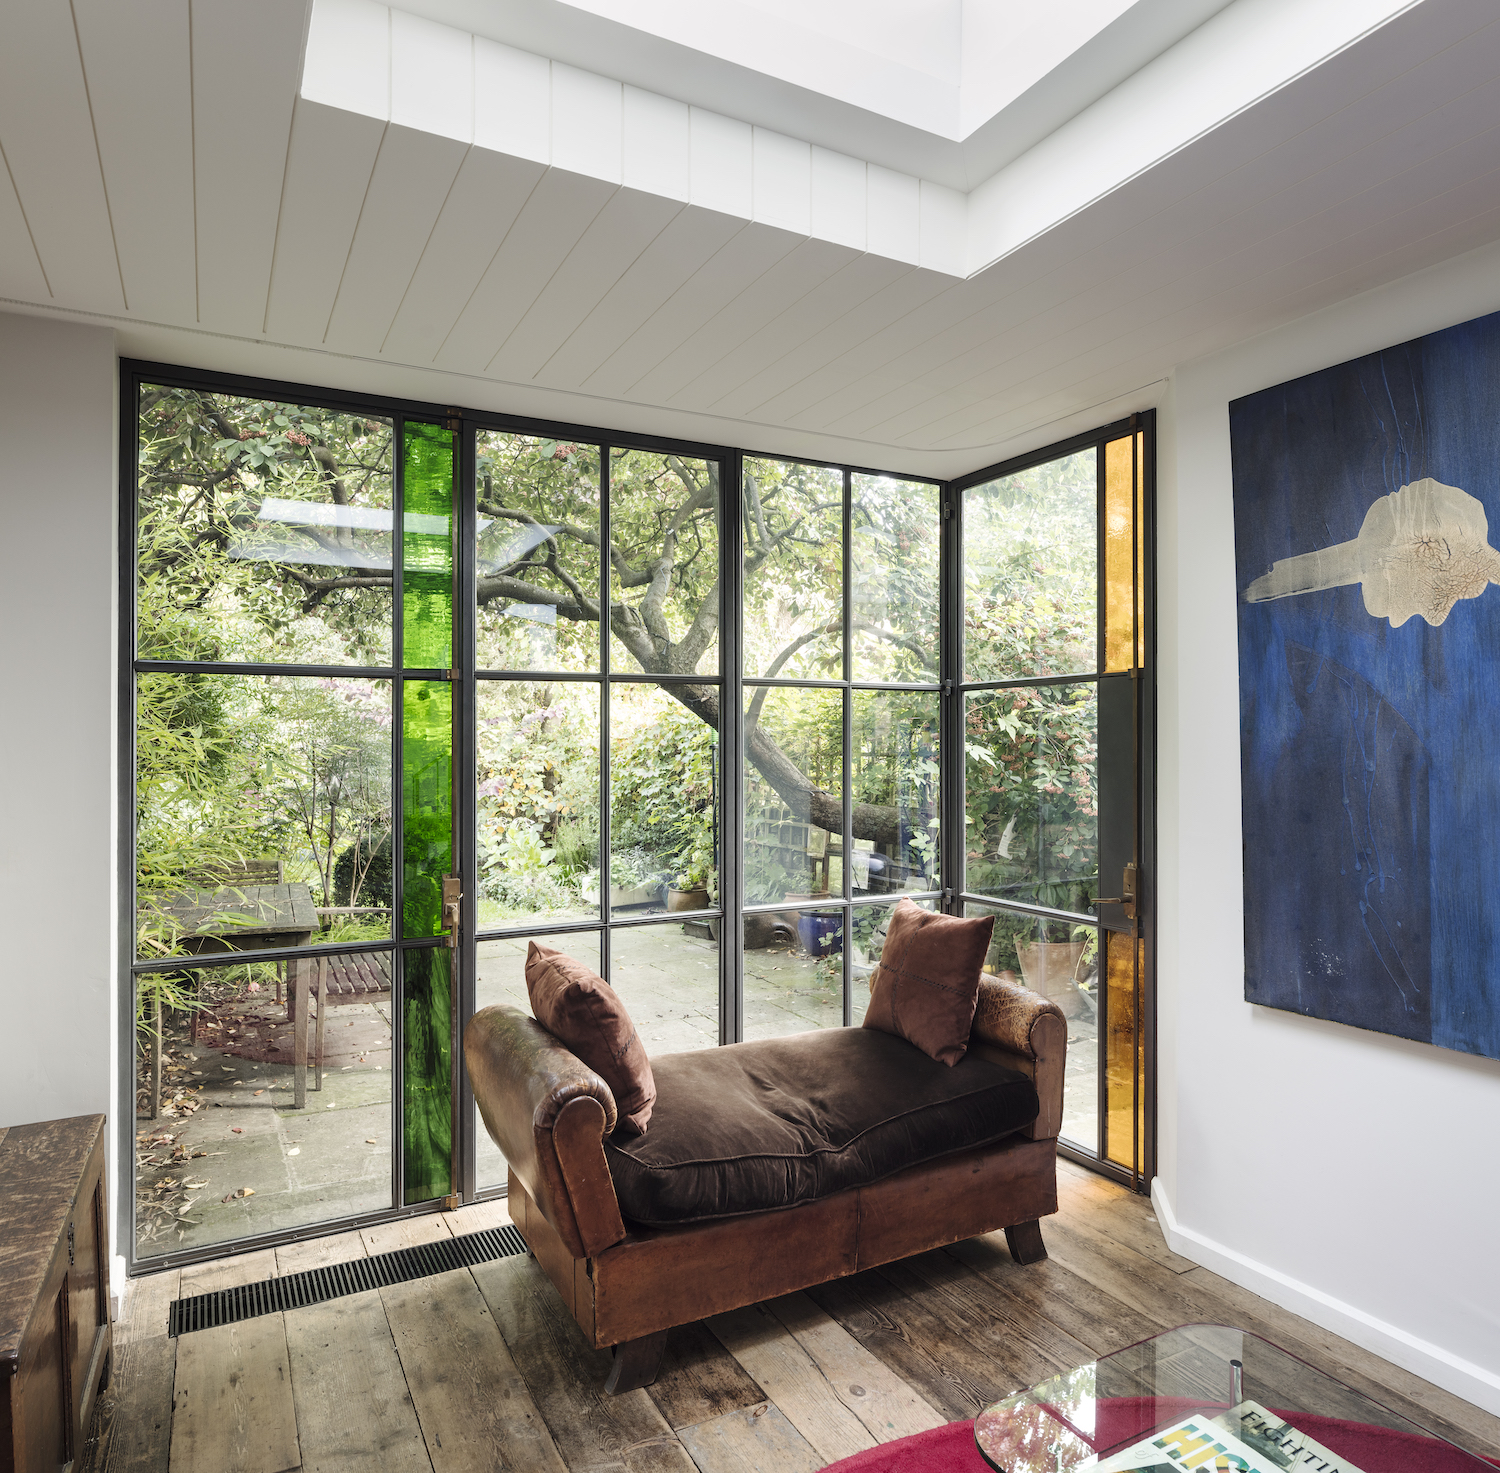 cozy living room with window view to garden